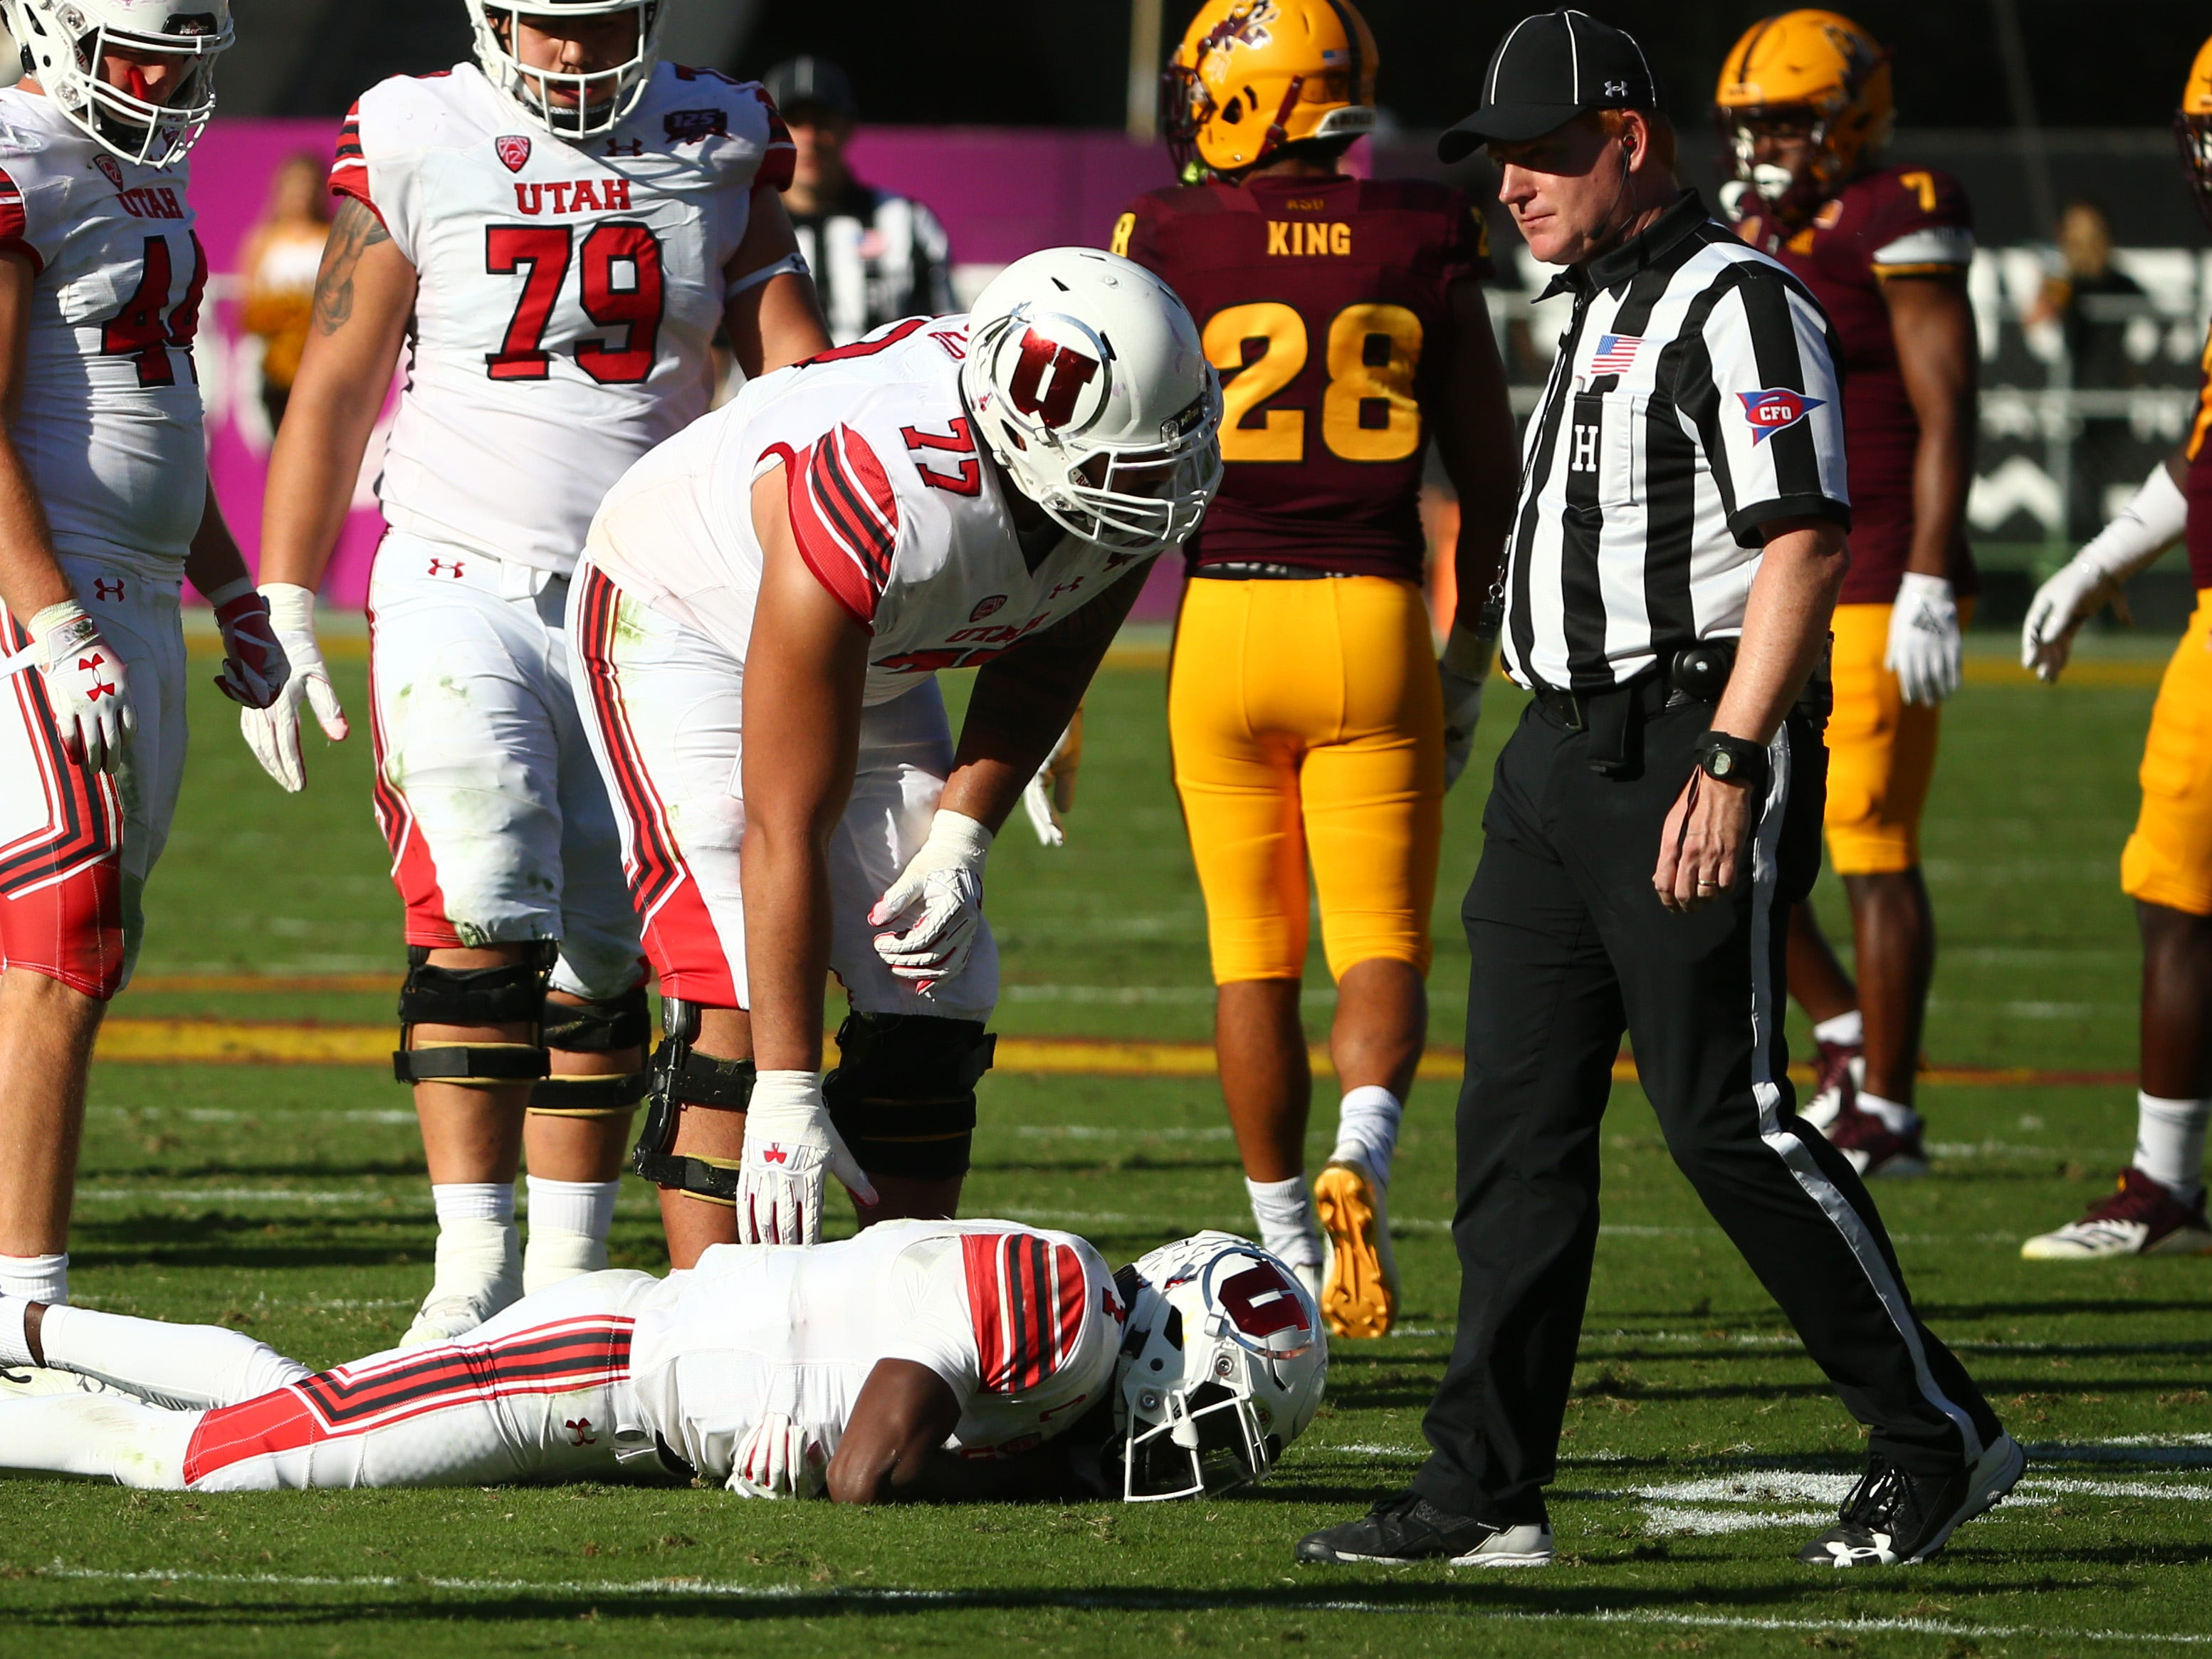 Utah quarterback Tyler Huntley leaves the after a shoulder injury against Arizona State in the second half on Nov. 3 at Sun Devil Stadium.